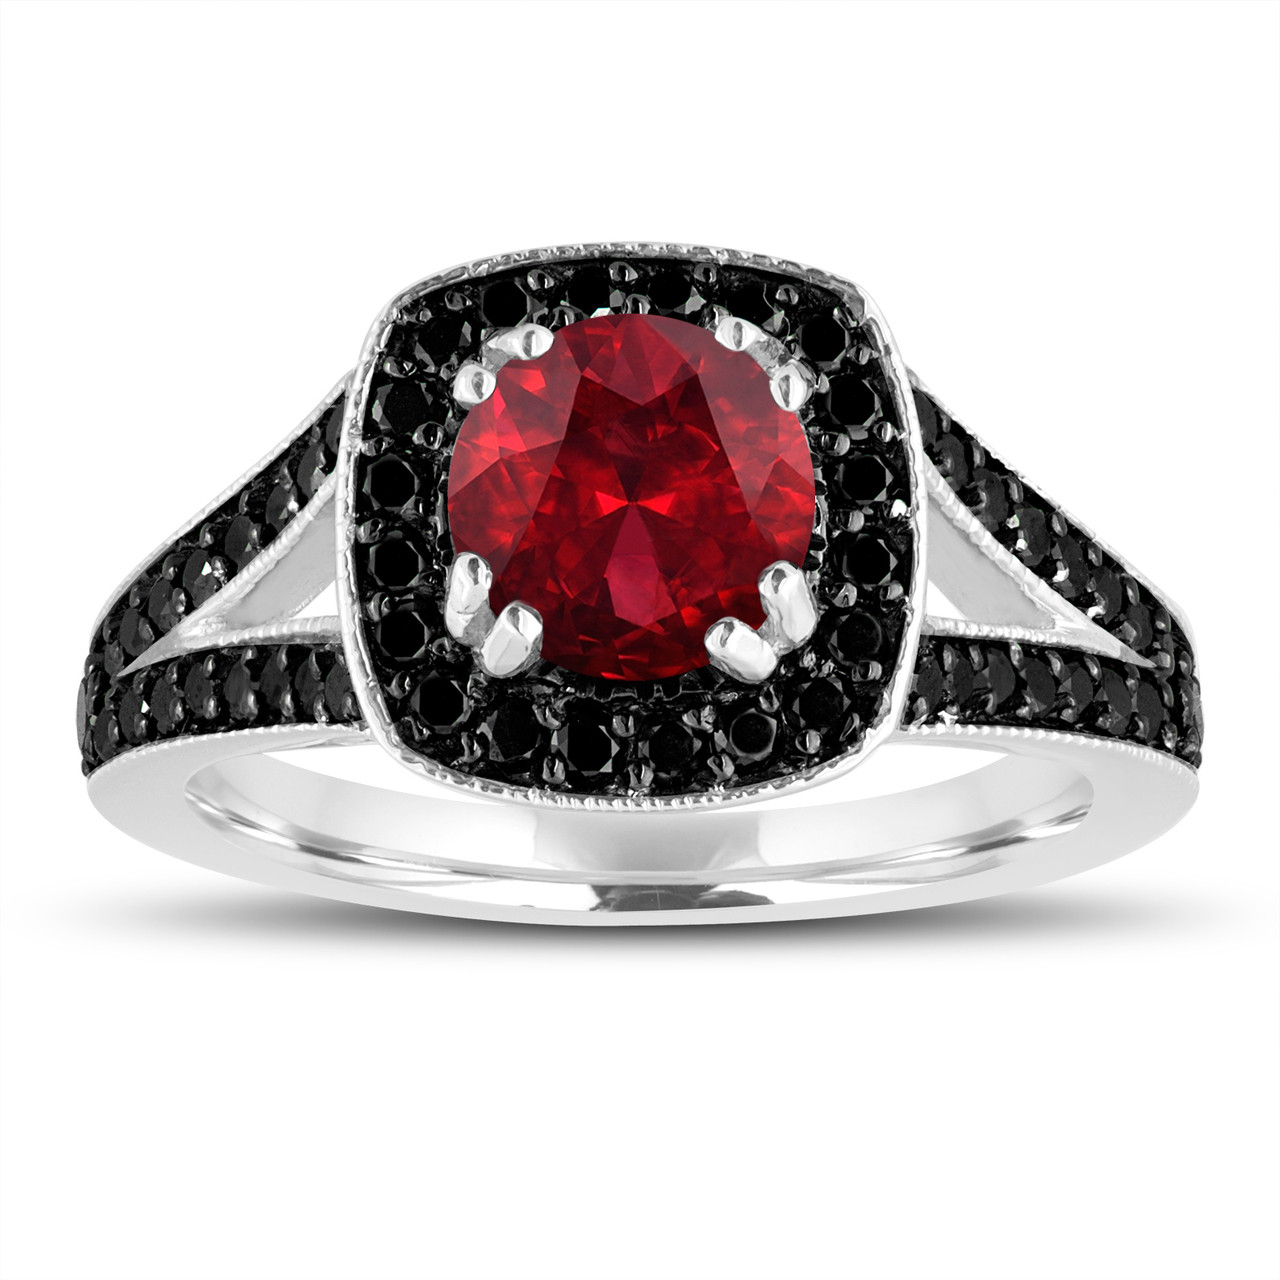 Red Garnet And Fancy Black Diamonds Engagement Ring 14K